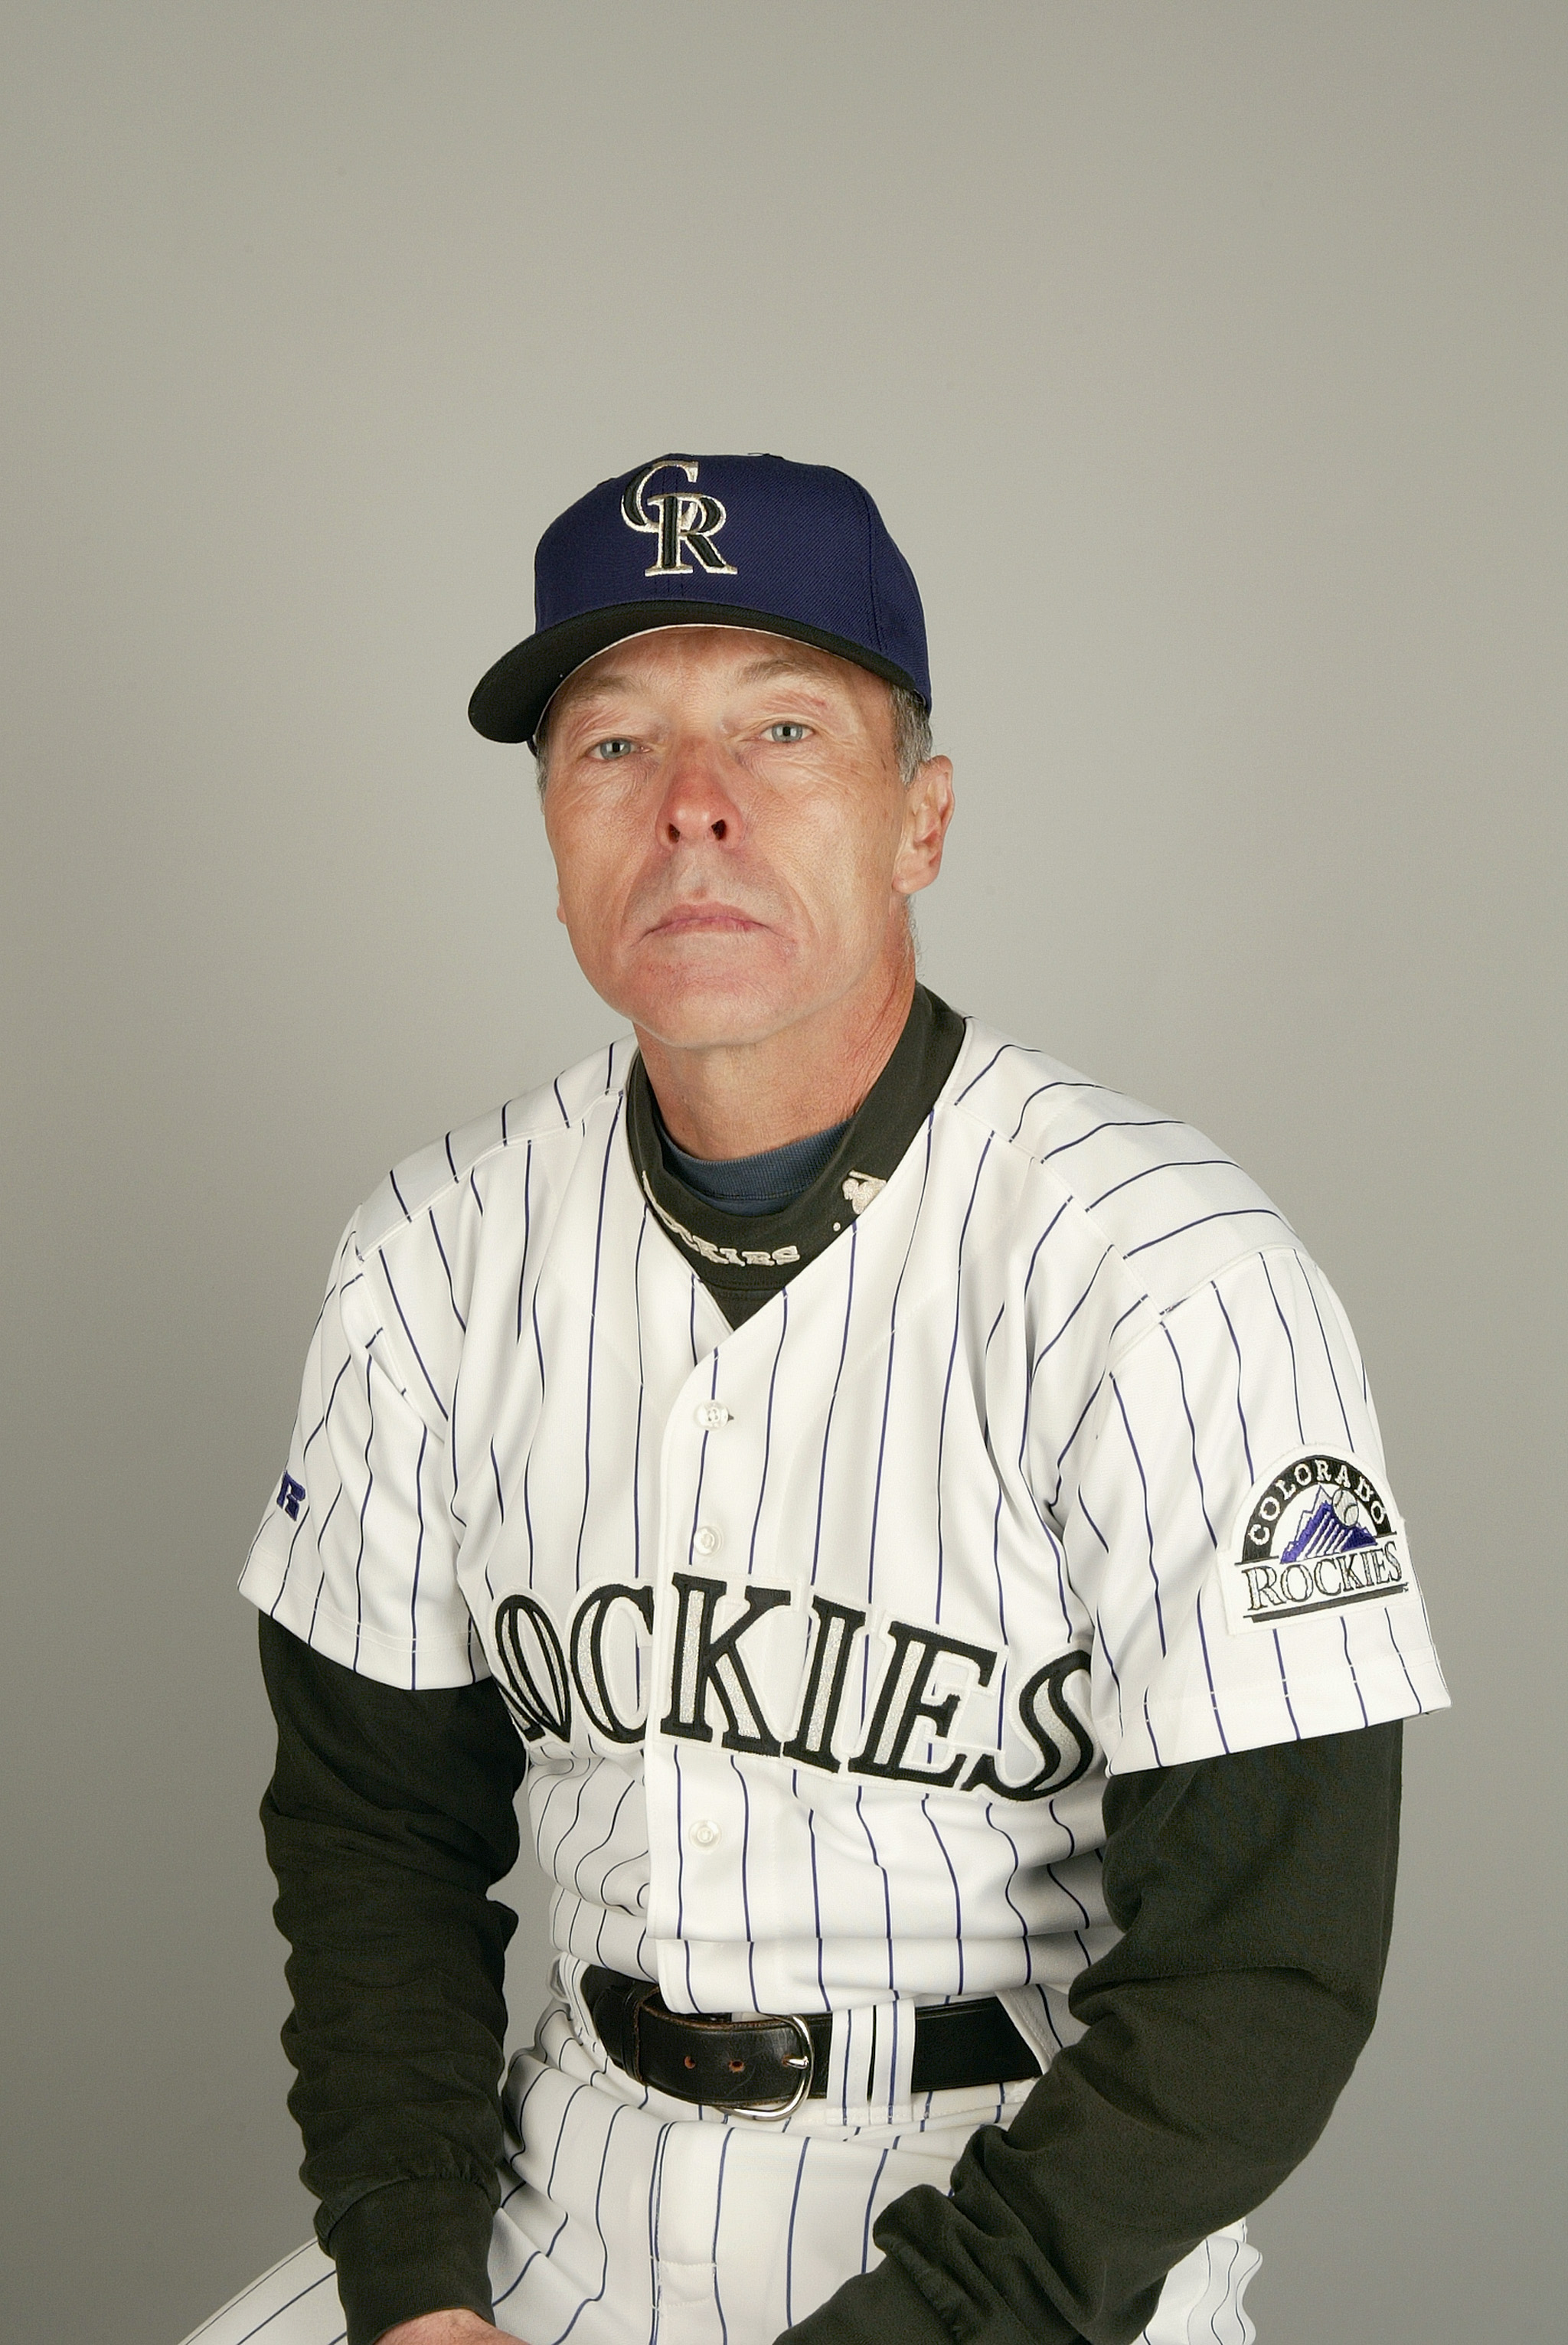 TUCSON - FEBRUARY 28:  Coach Dave Collins #29 of the Colorado Rockies during the 2004 MLB Spring Training Photo Day at Hi Corbett Field on February 28, 2004 in Tucson, Arizona. (Photo by Harry How/Getty Images)